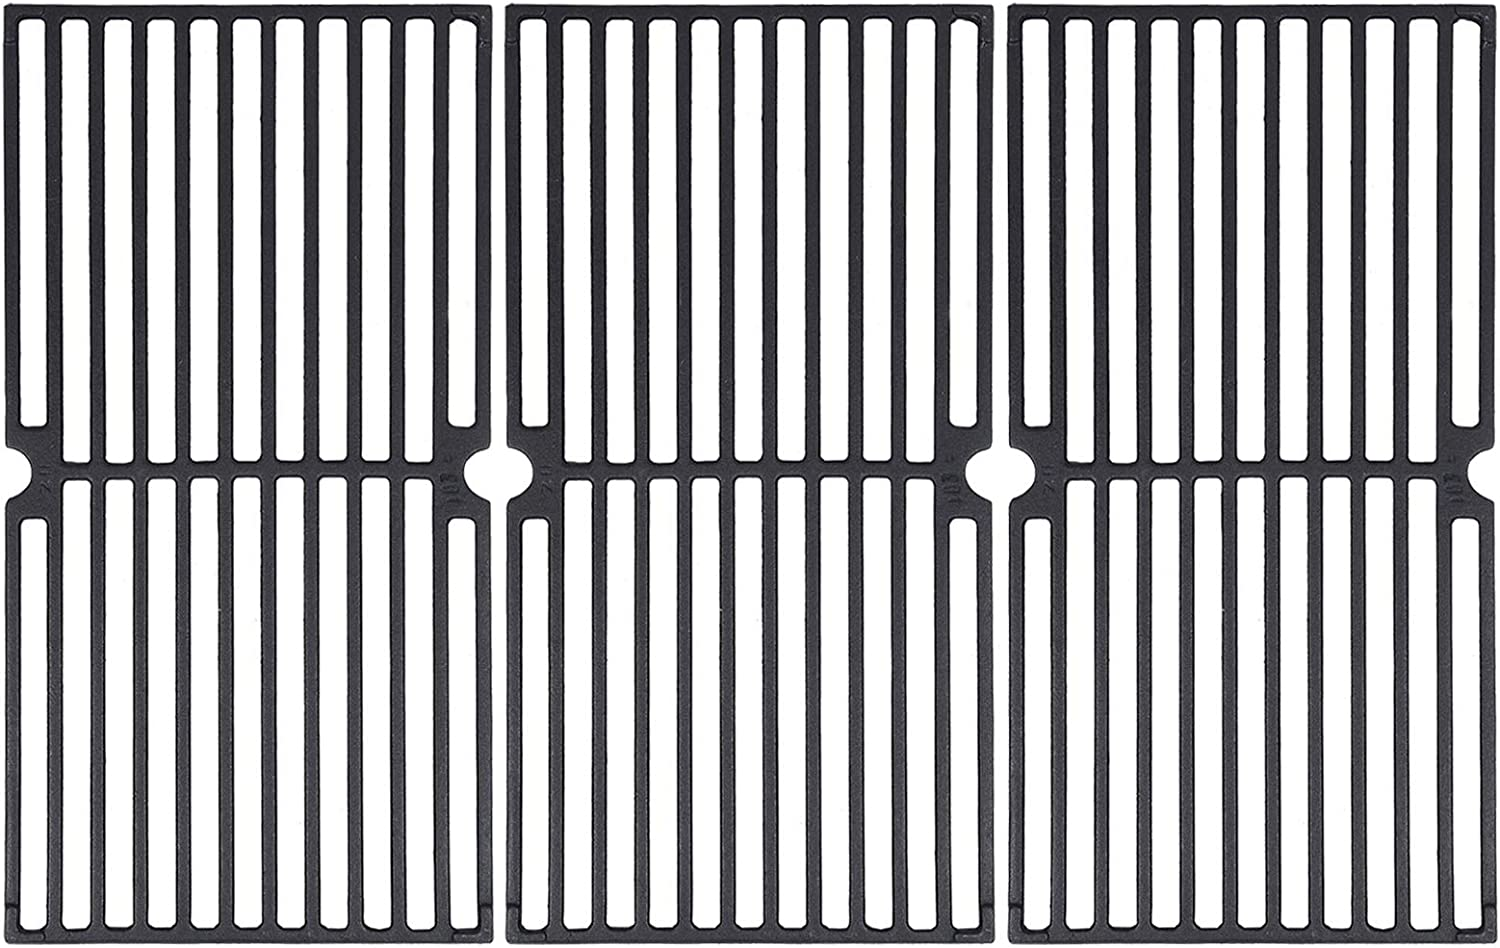 """GGC Grill Grates Replacement for Brinkmann 810-8410-F, 810-2410-S, 810-2511-S, 810-2512-S, 810-8411-5, 810-9415-W and Others, Porcelain Coated Cast Iron Cooking Grate(17 3/4"""" x 8 15/16"""")(Set of 3)"""